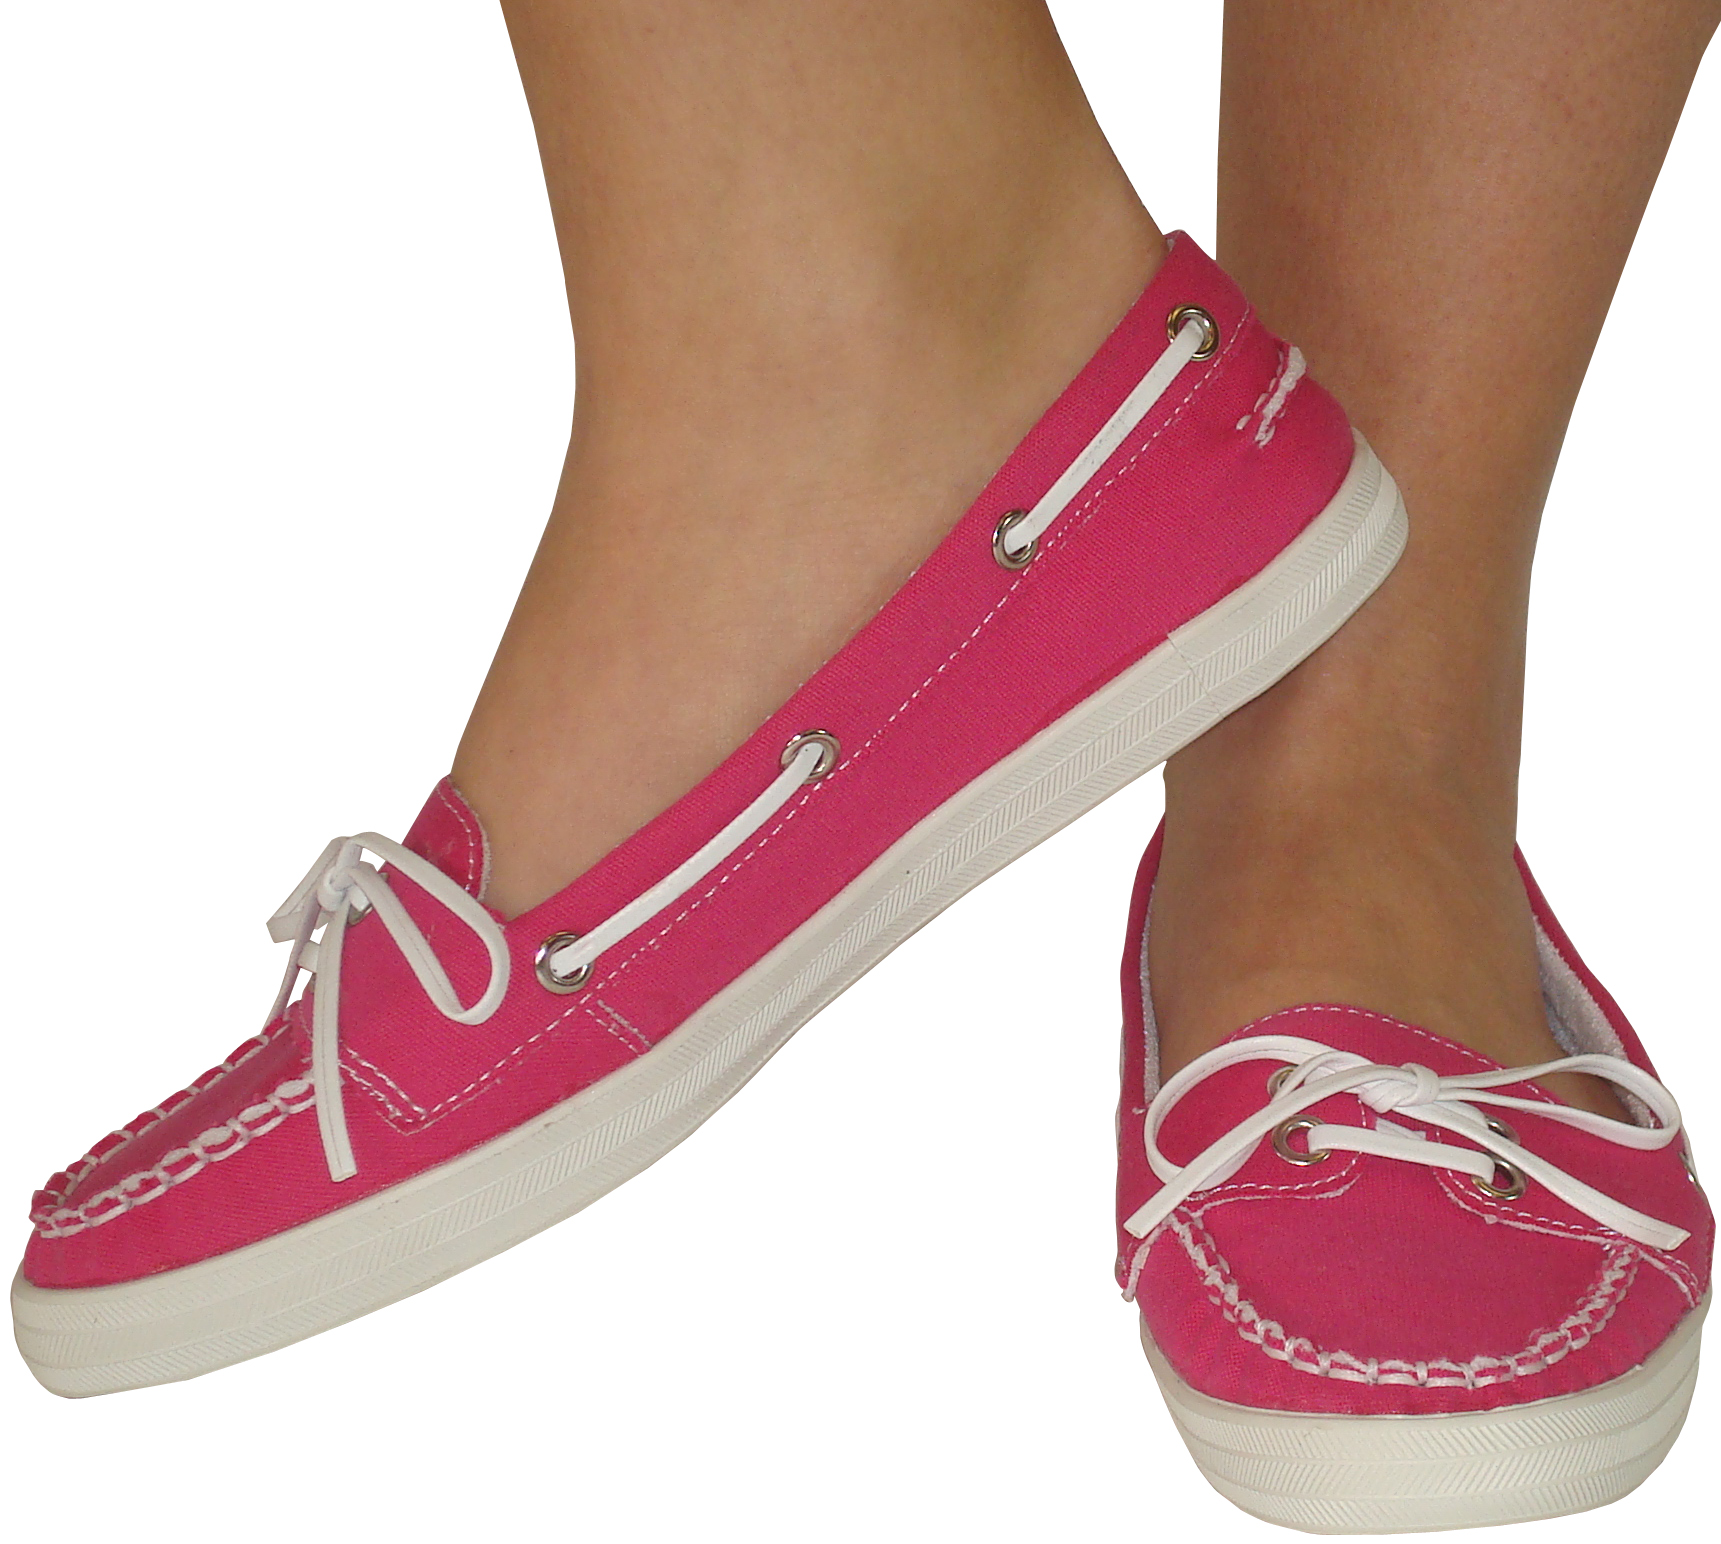 Womens Loafer Shoes On Sale - 28 Images - Womens Loafer Shoes On Sale 28 Images Unze Beck Womens ...